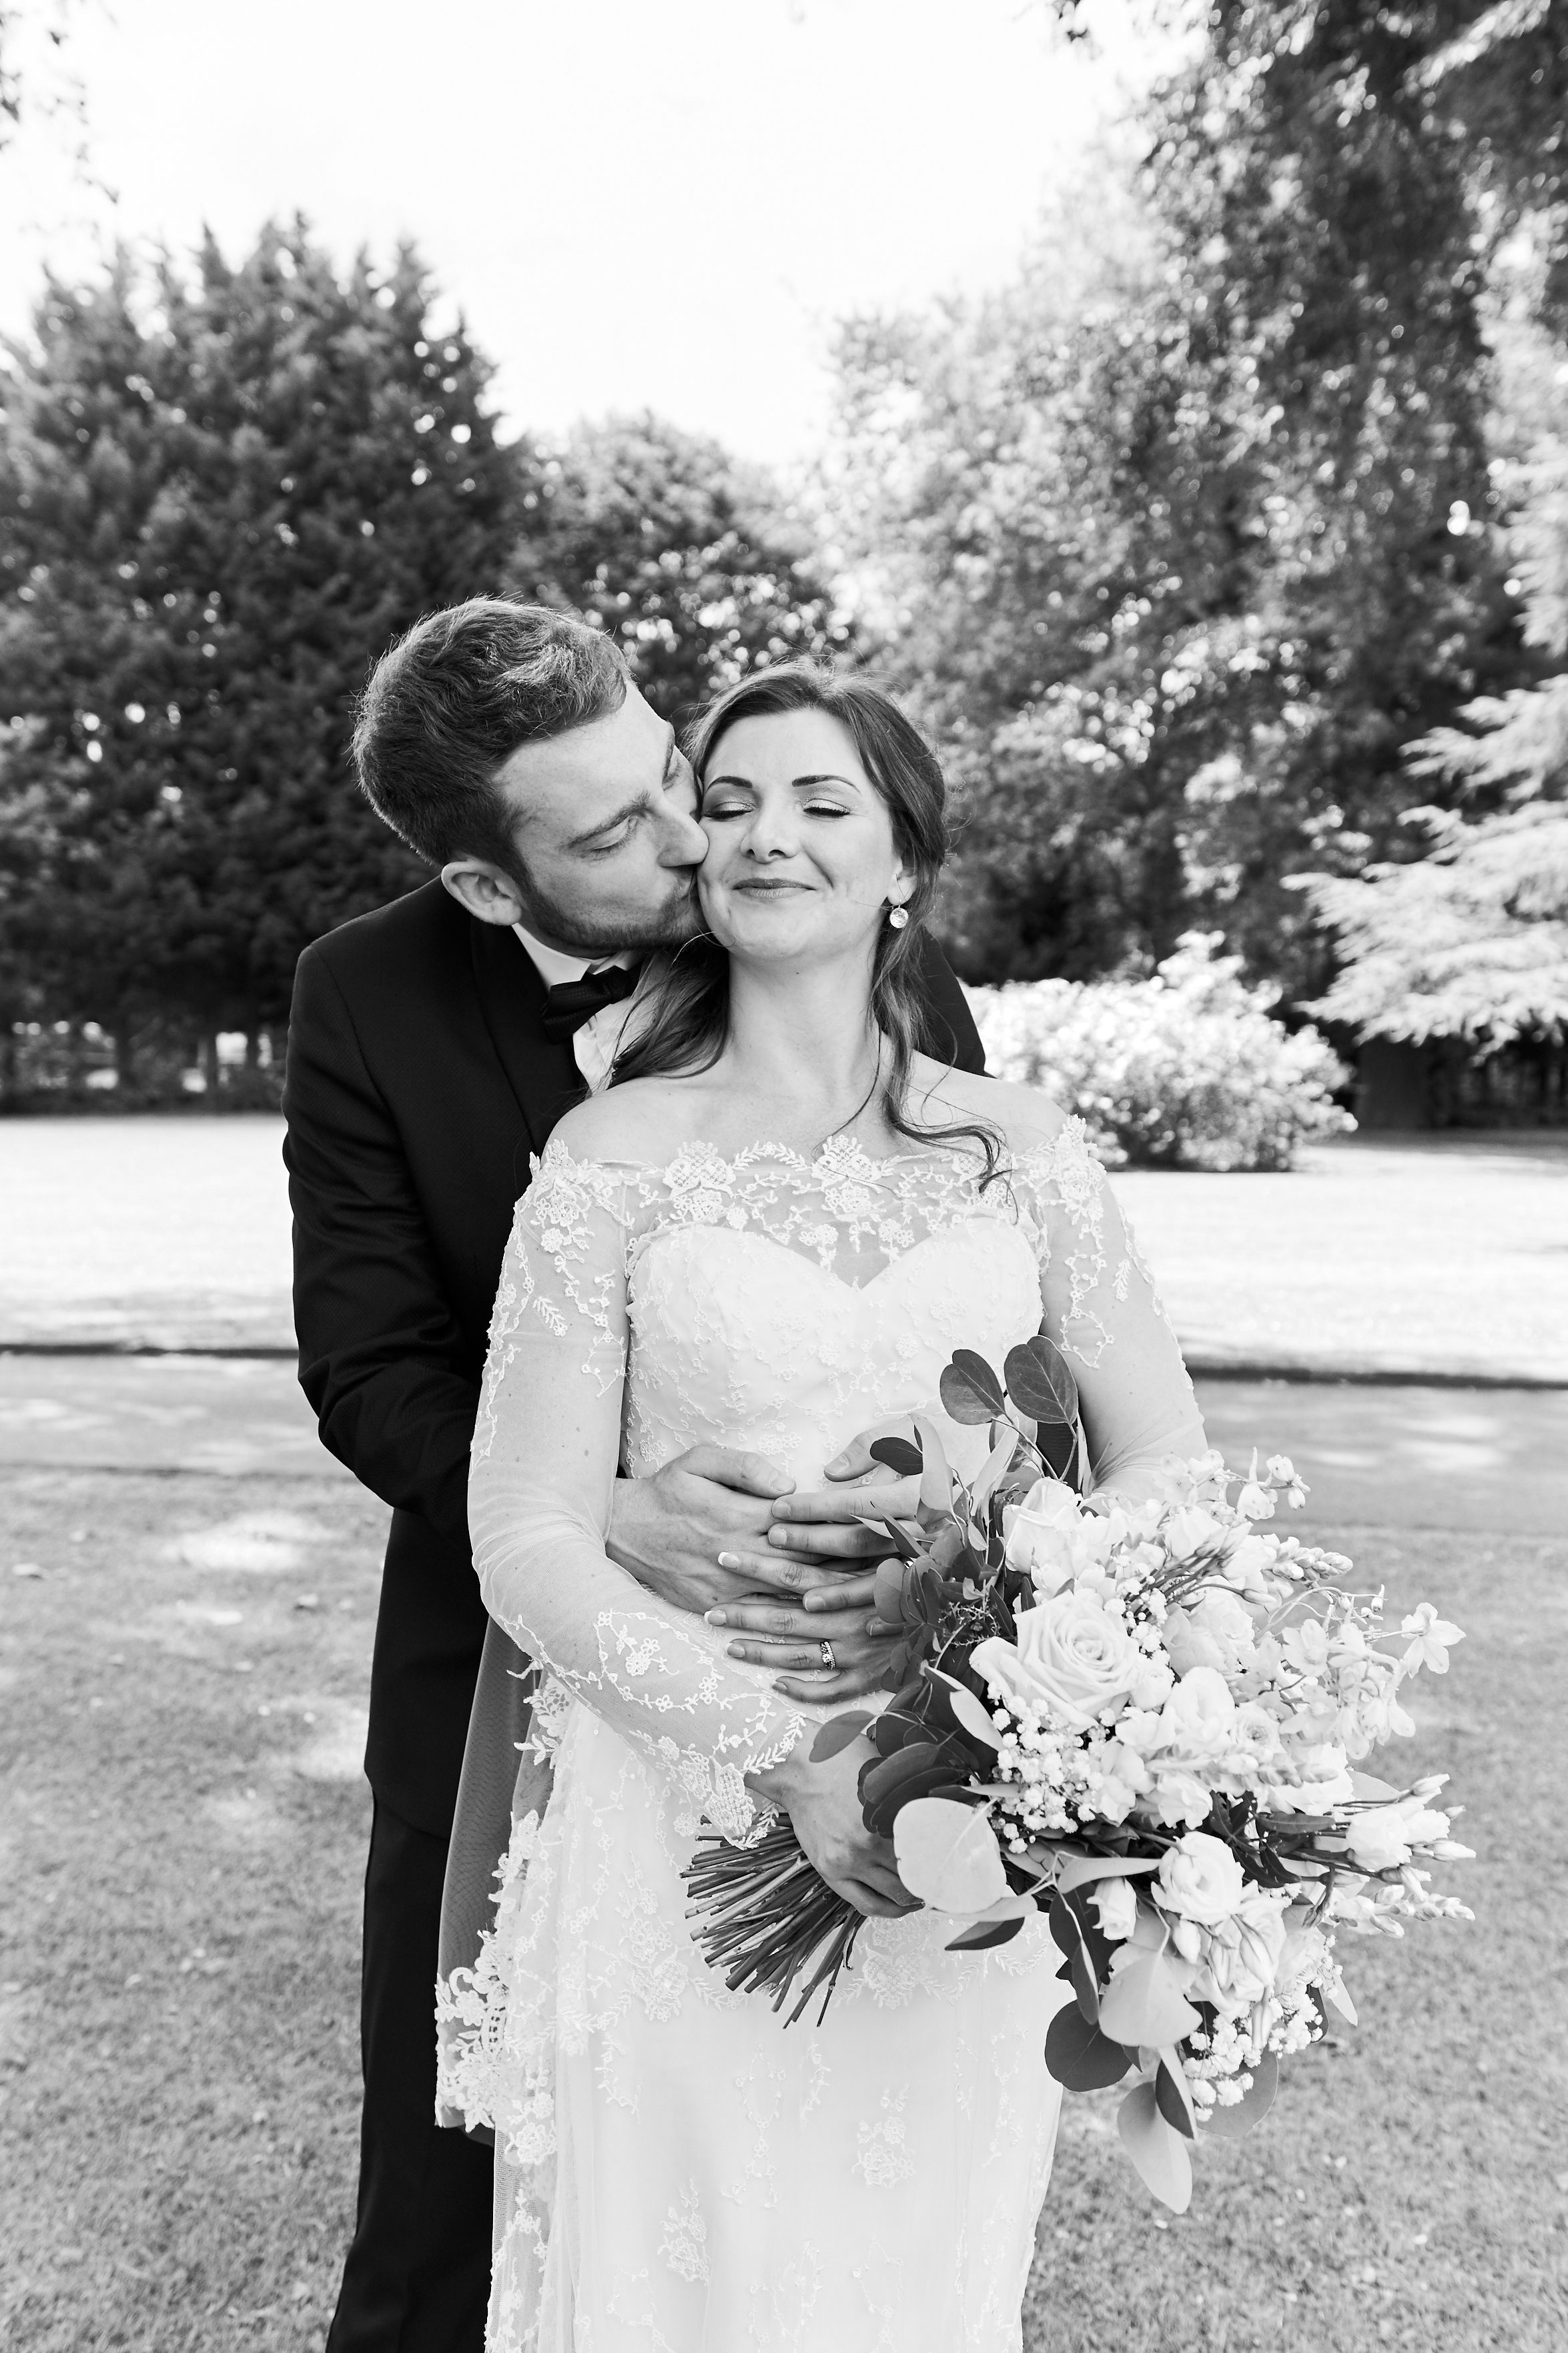 groom kisses bride on cheek as they pose for portraits at Orsett hall, Essex by Norfolk Wedding Photographer Faye Amare